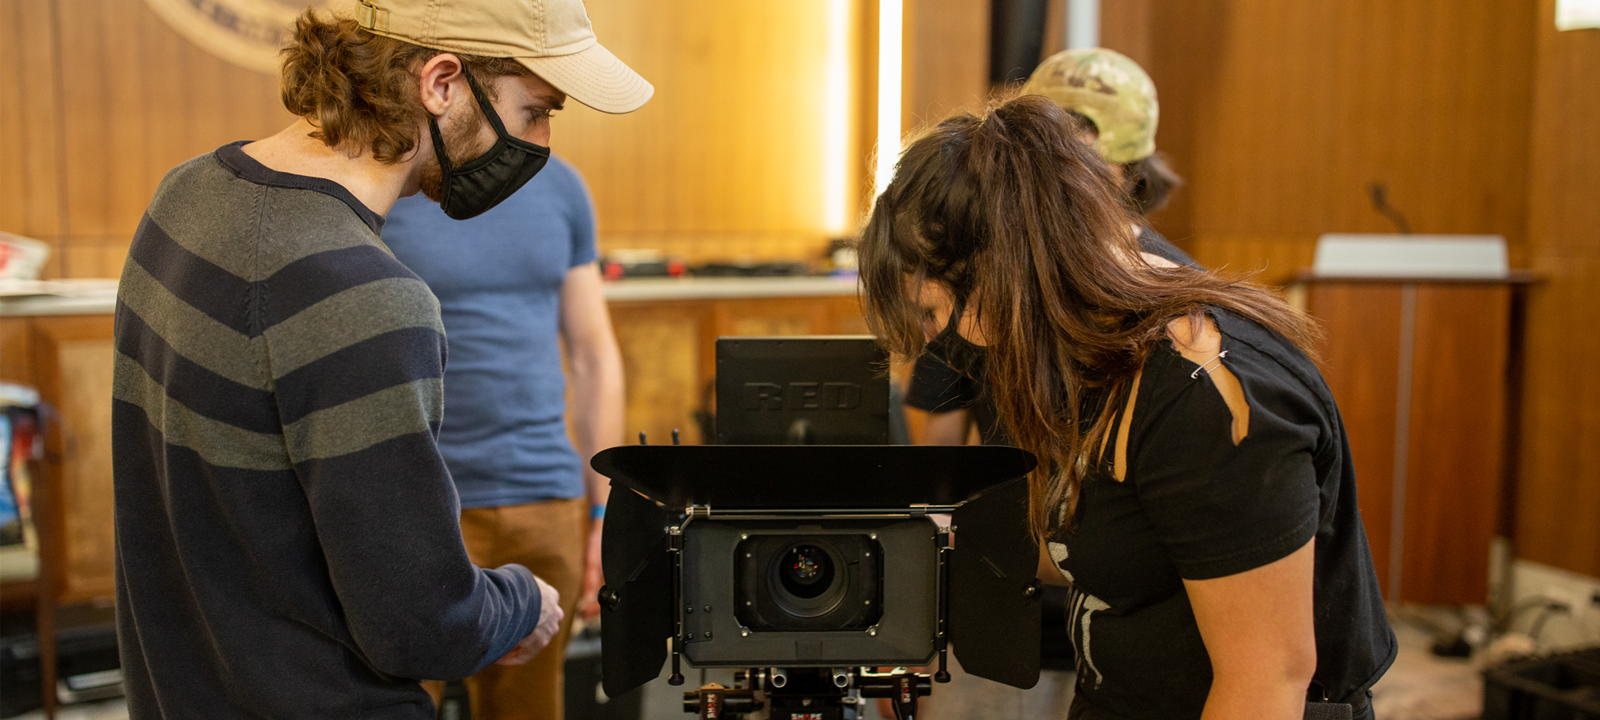 Our Digital Filmmaking program is planted in the heart of Hollywood South with major films working day and night both on and around our beautiful campus.